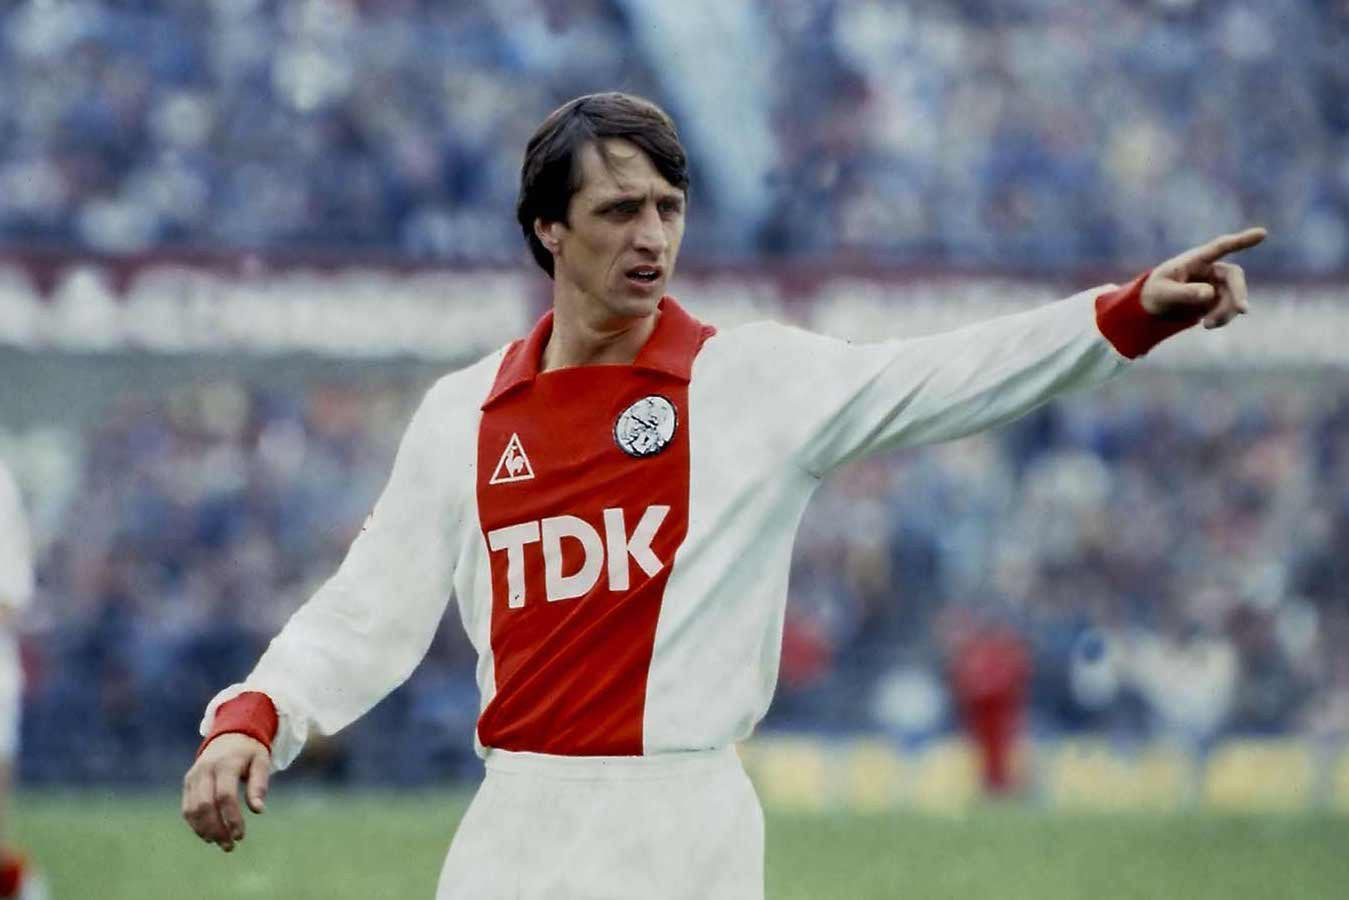 The one and only Johan Cruijff